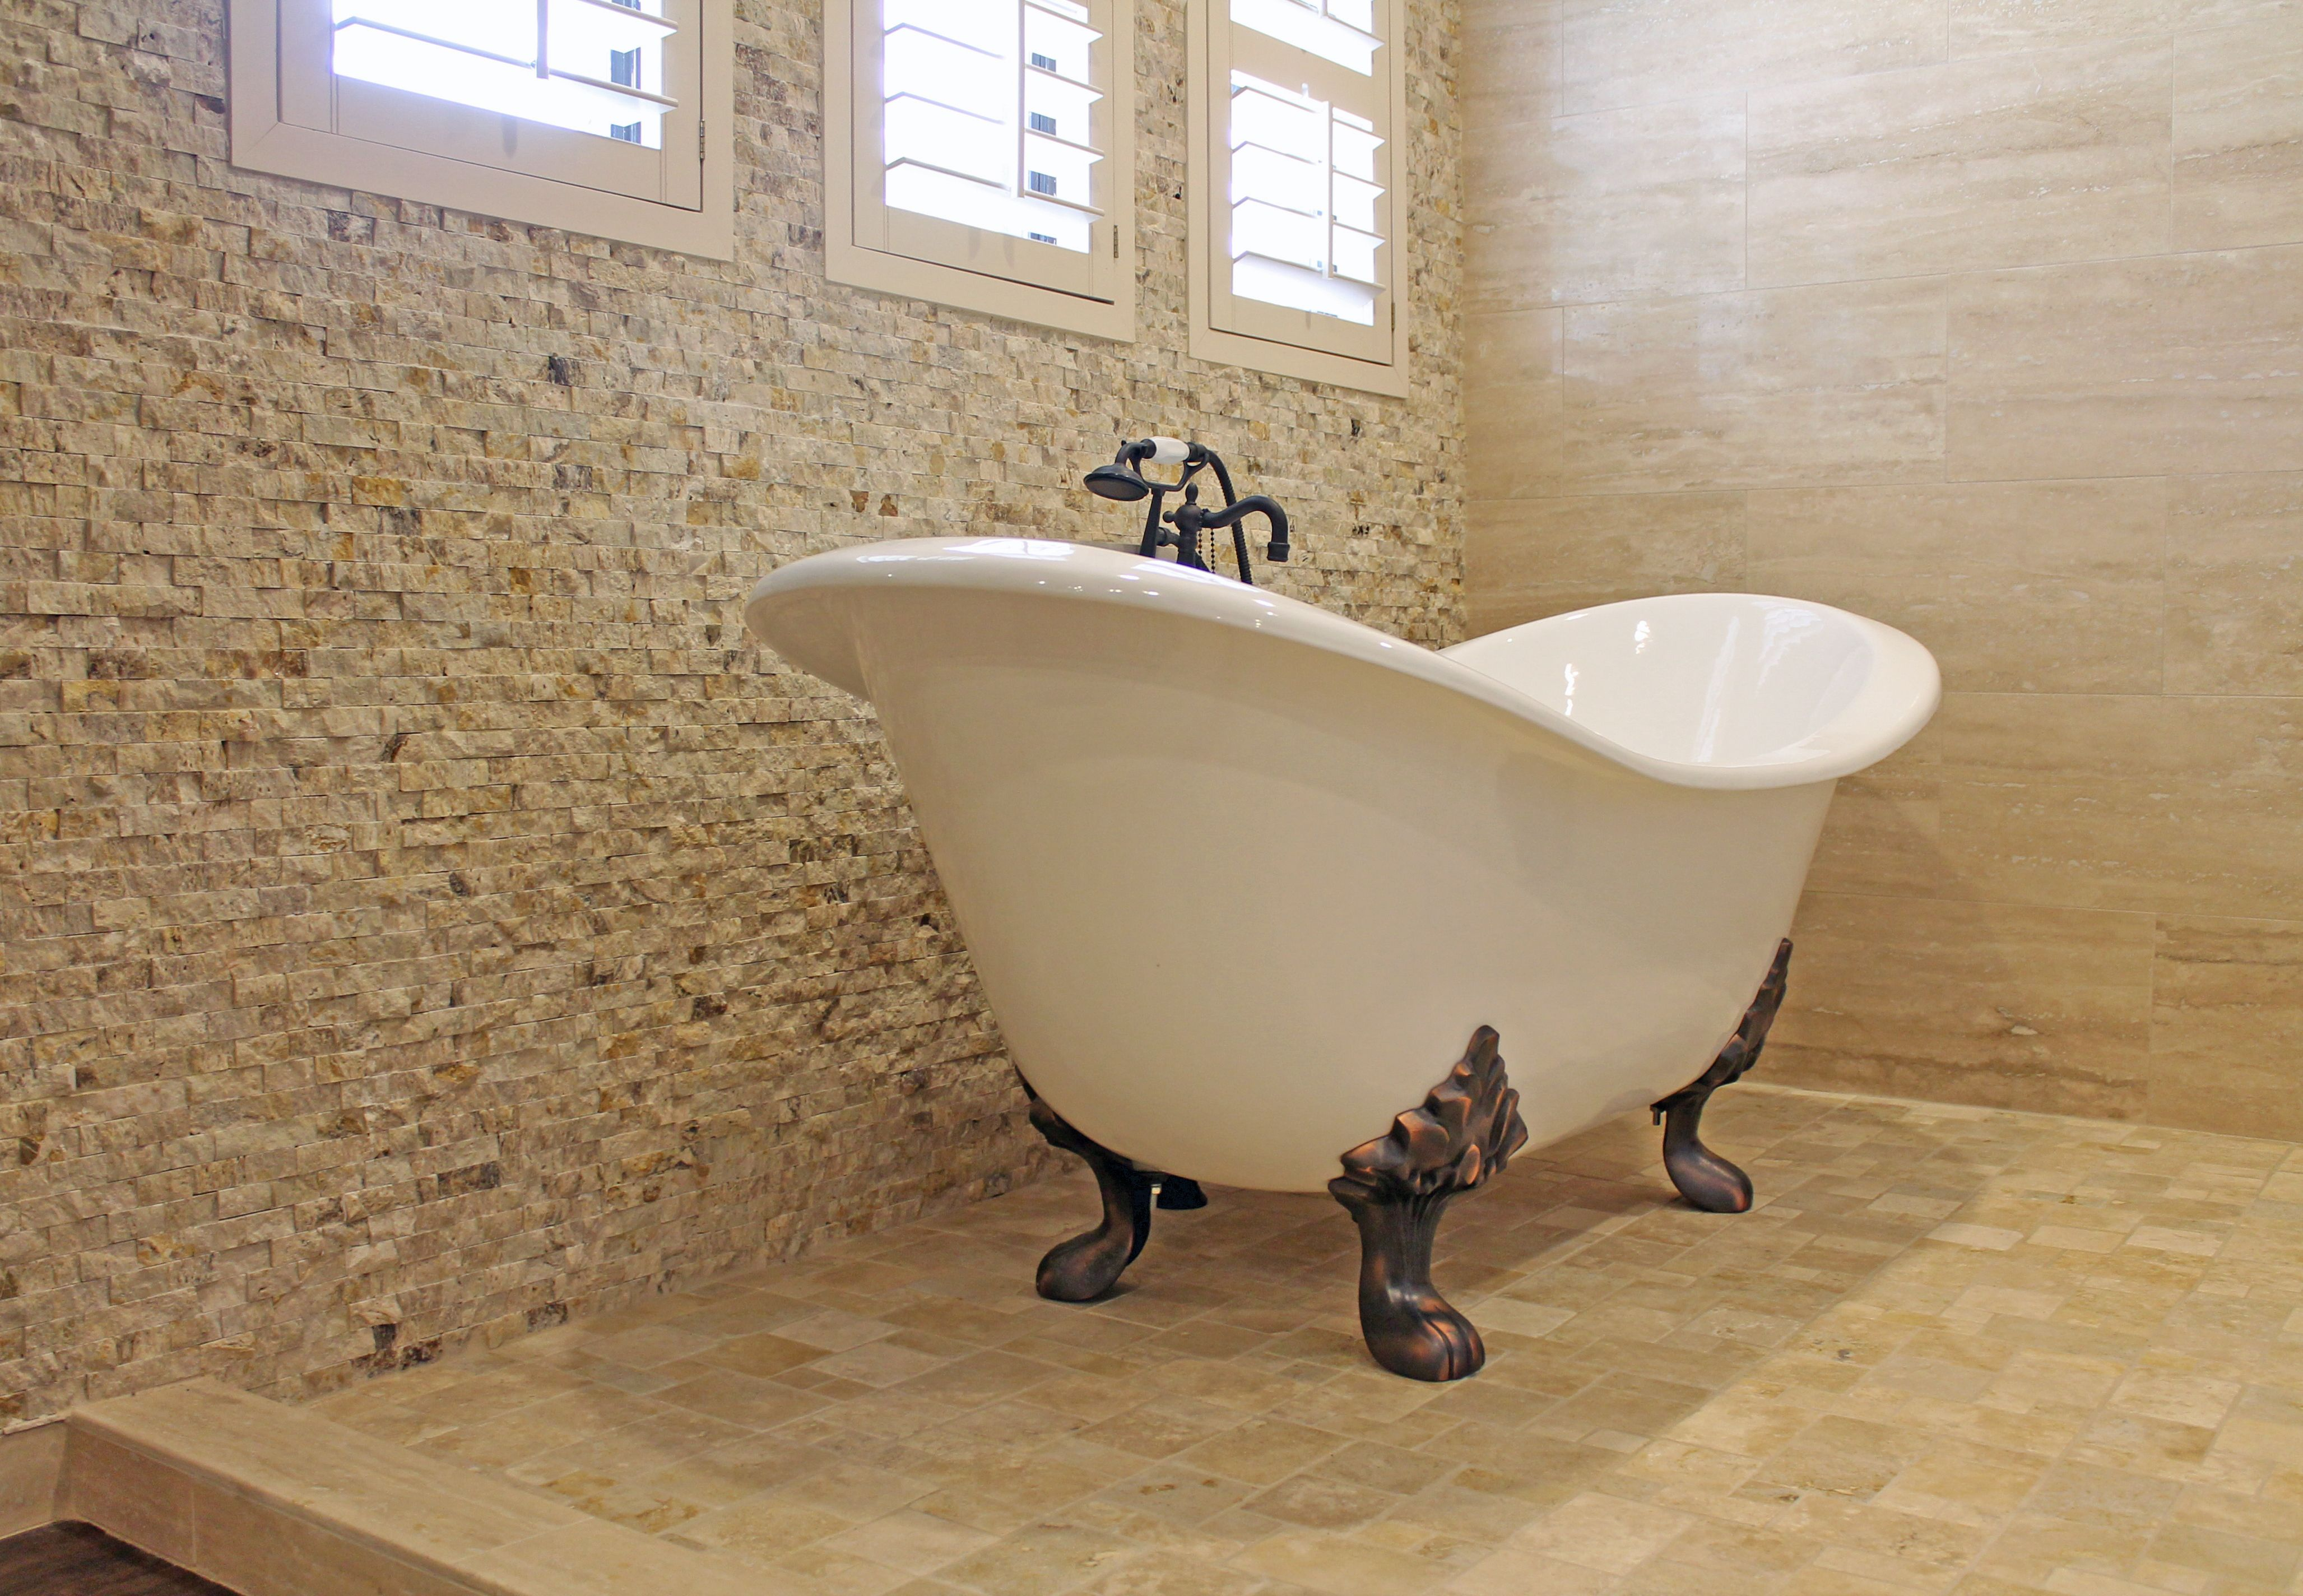 Freestanding Tub With Bronze Legs And Natural Stone Flooring Wall Tile Home Interiordesign Bathroom Bathrooms Remodel Free Standing Bath Tub Remodel